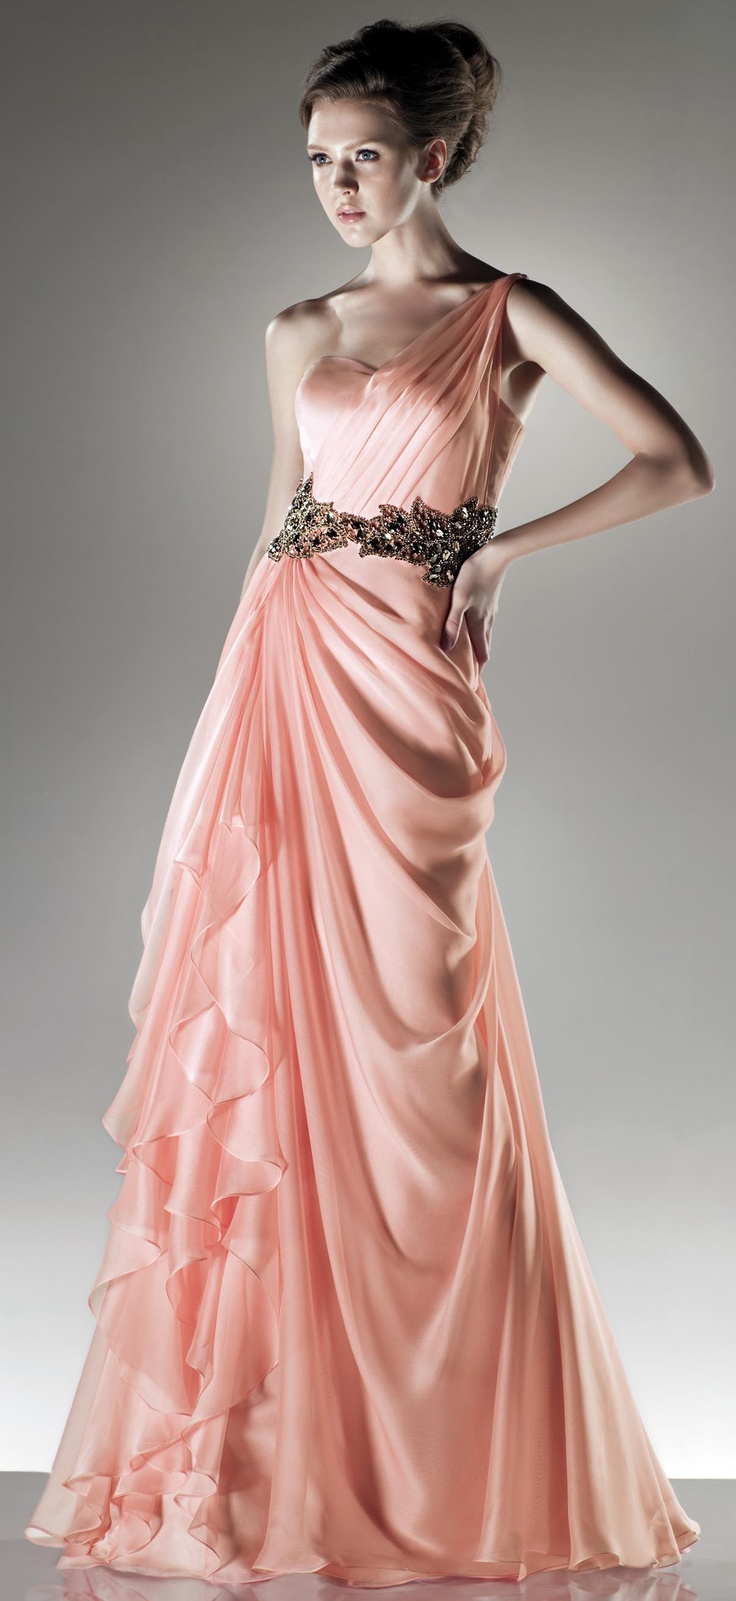 Elegant one shoulder chiffon gown ..if only when I was young!